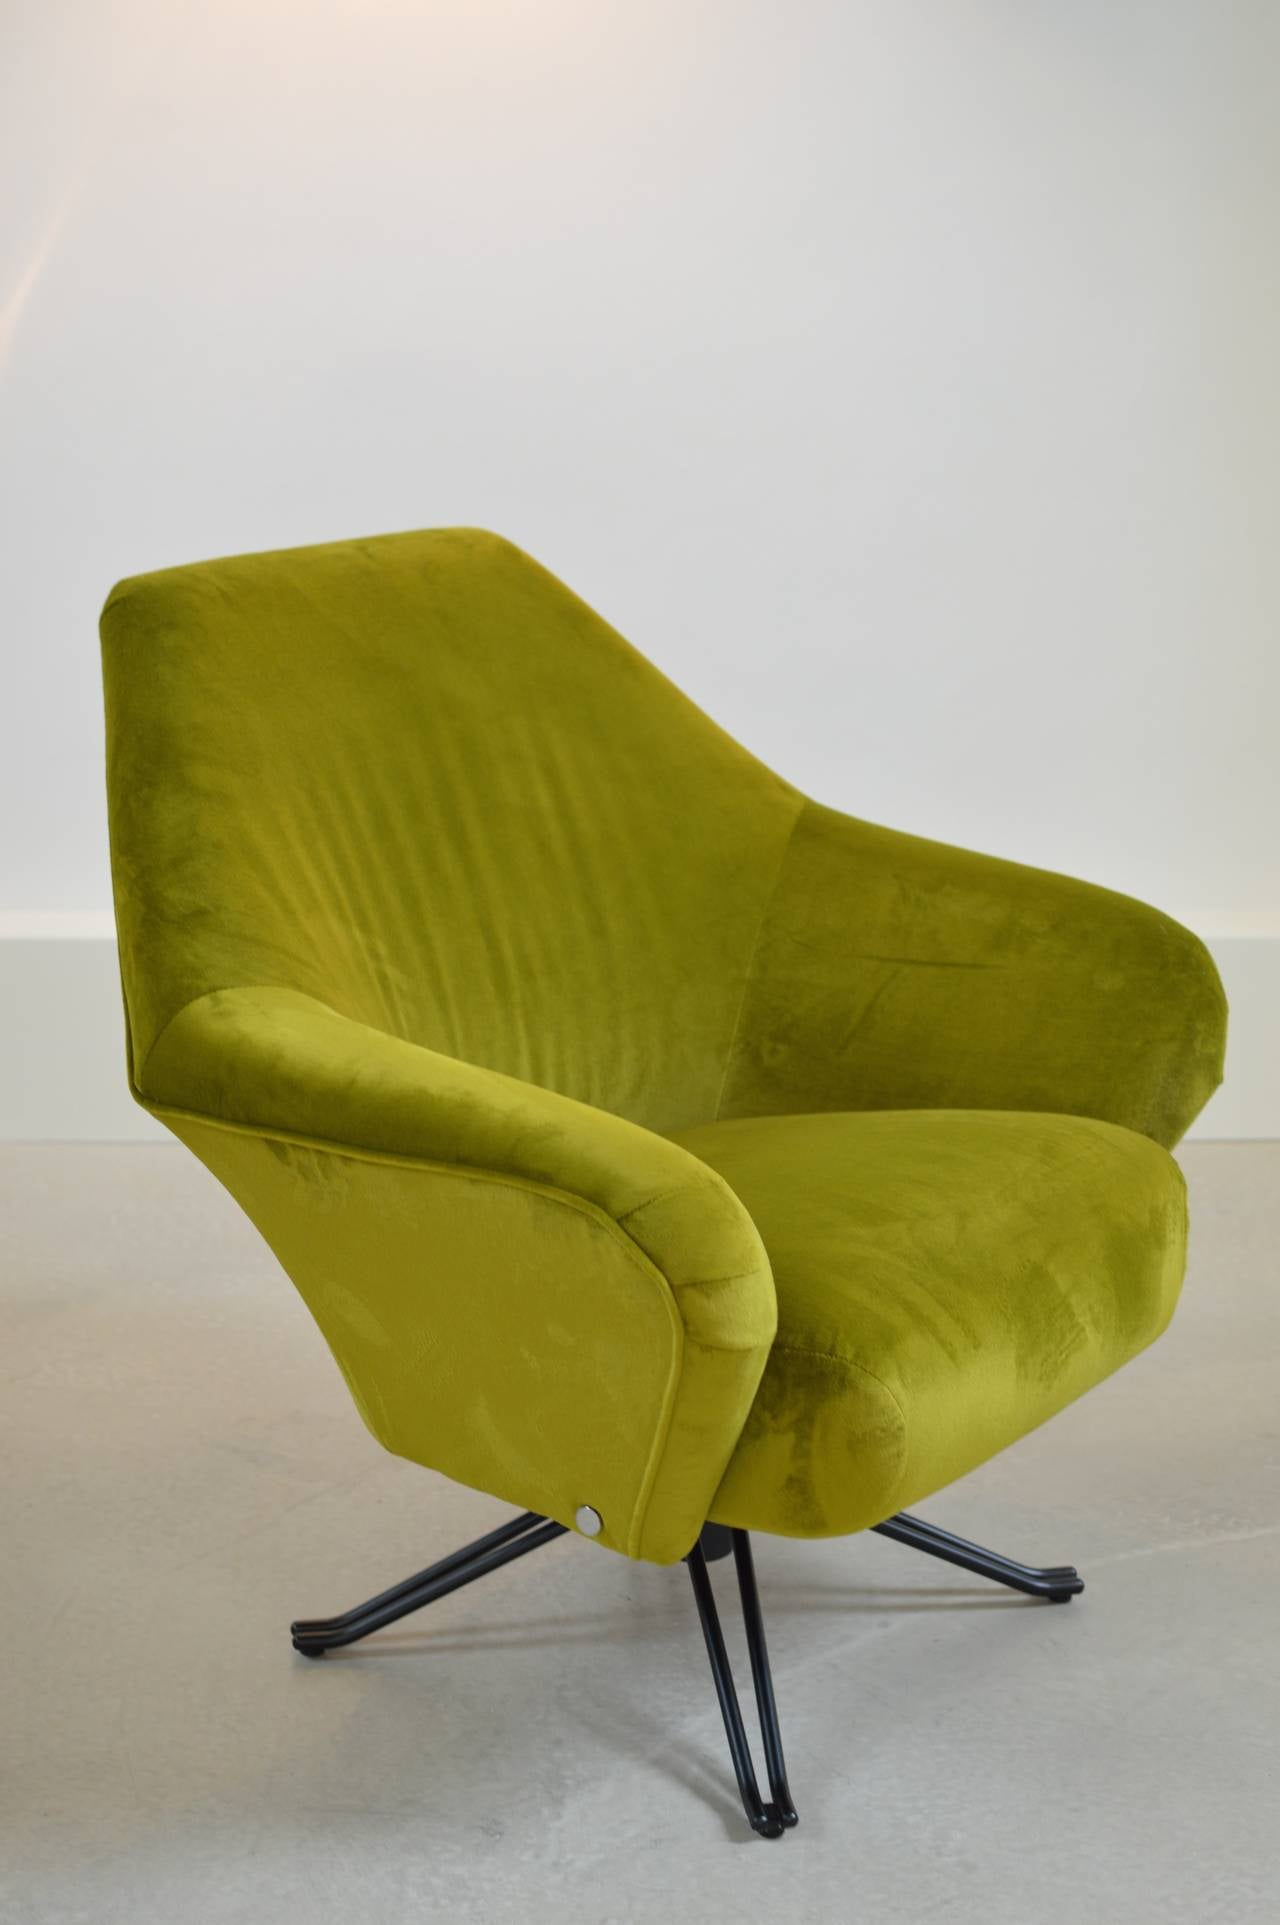 Superior Chartreuse P32 Armchair By Osvaldo Borsani For Tecno For Sale At 1stdibs